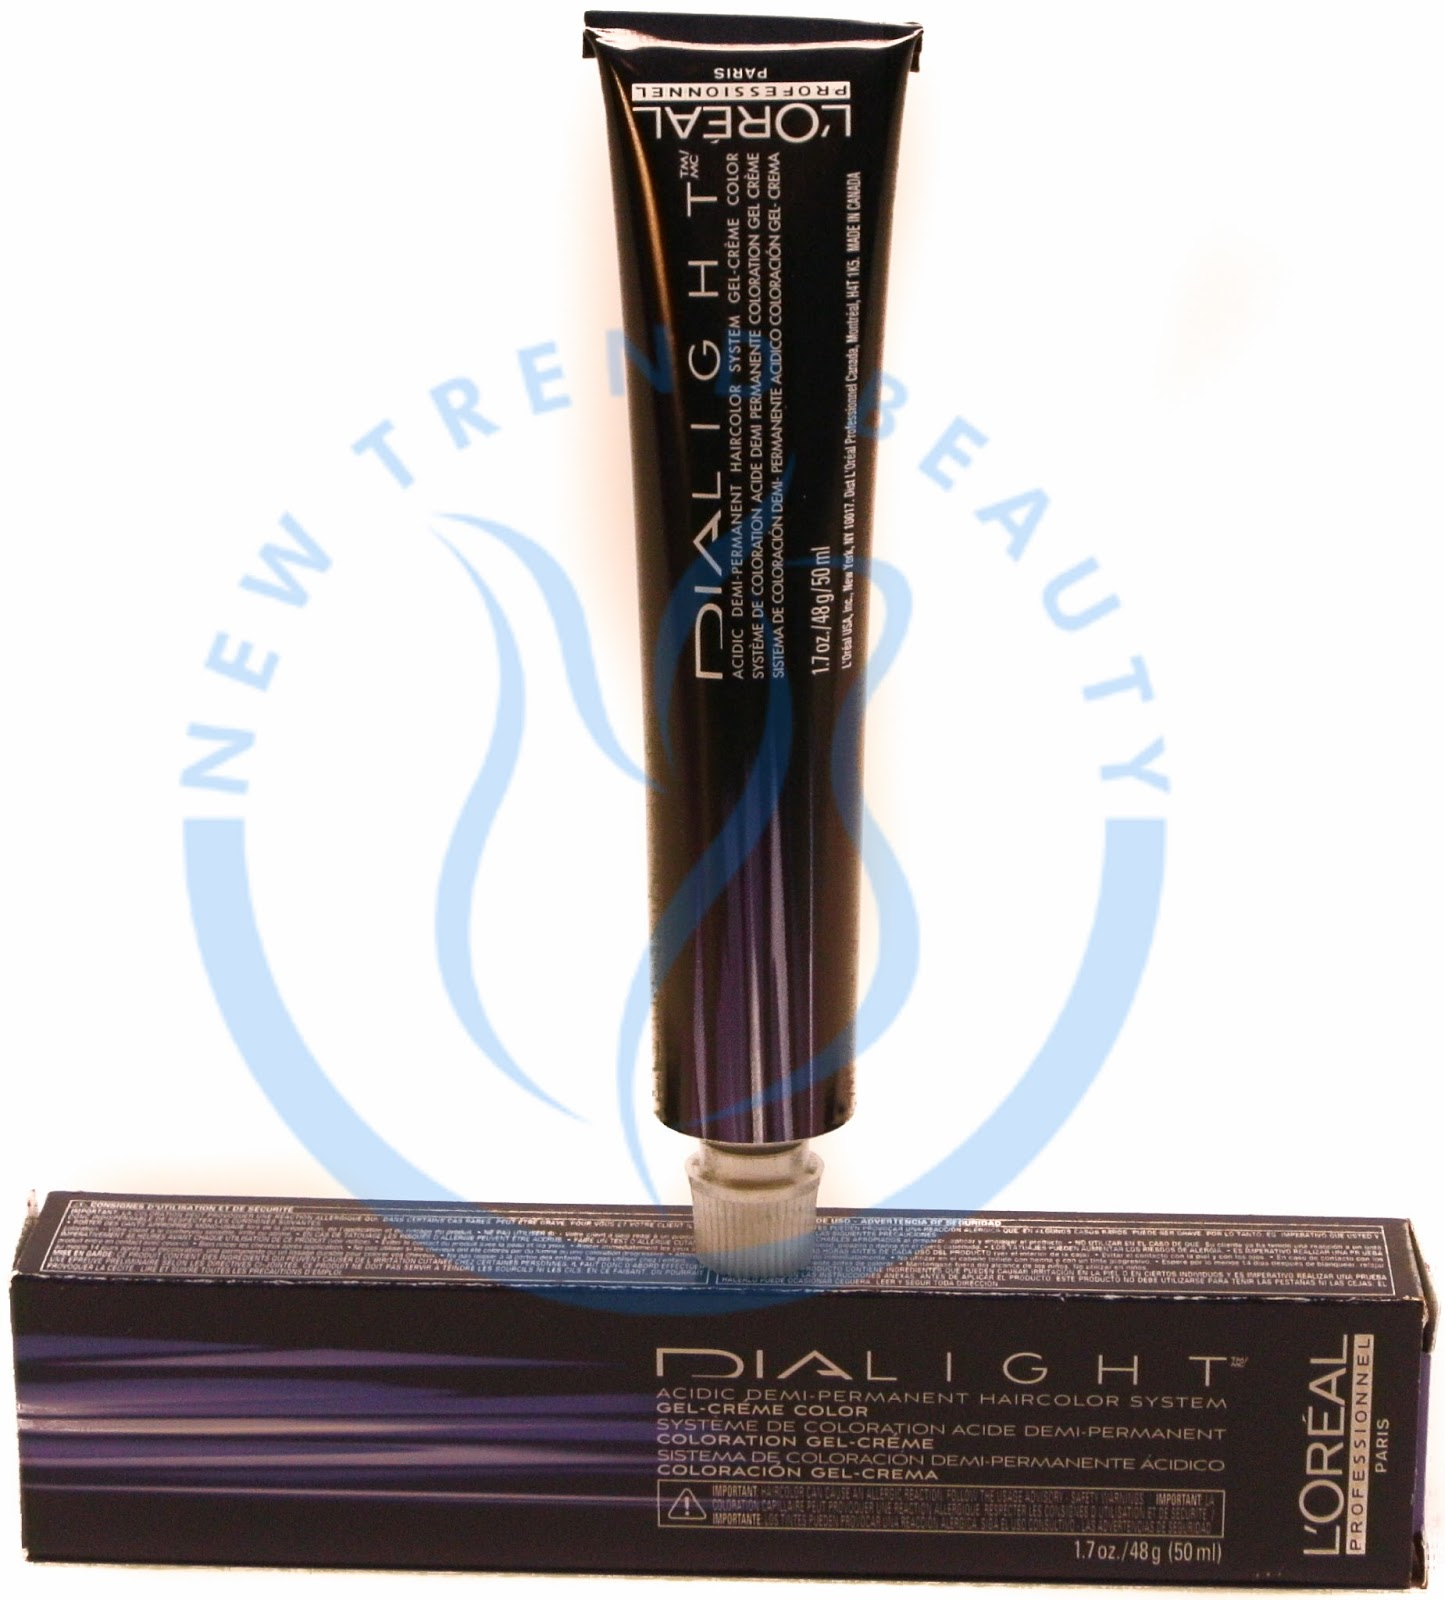 Loreal Professional Dialight Hair Color Loreal Demi Permanent